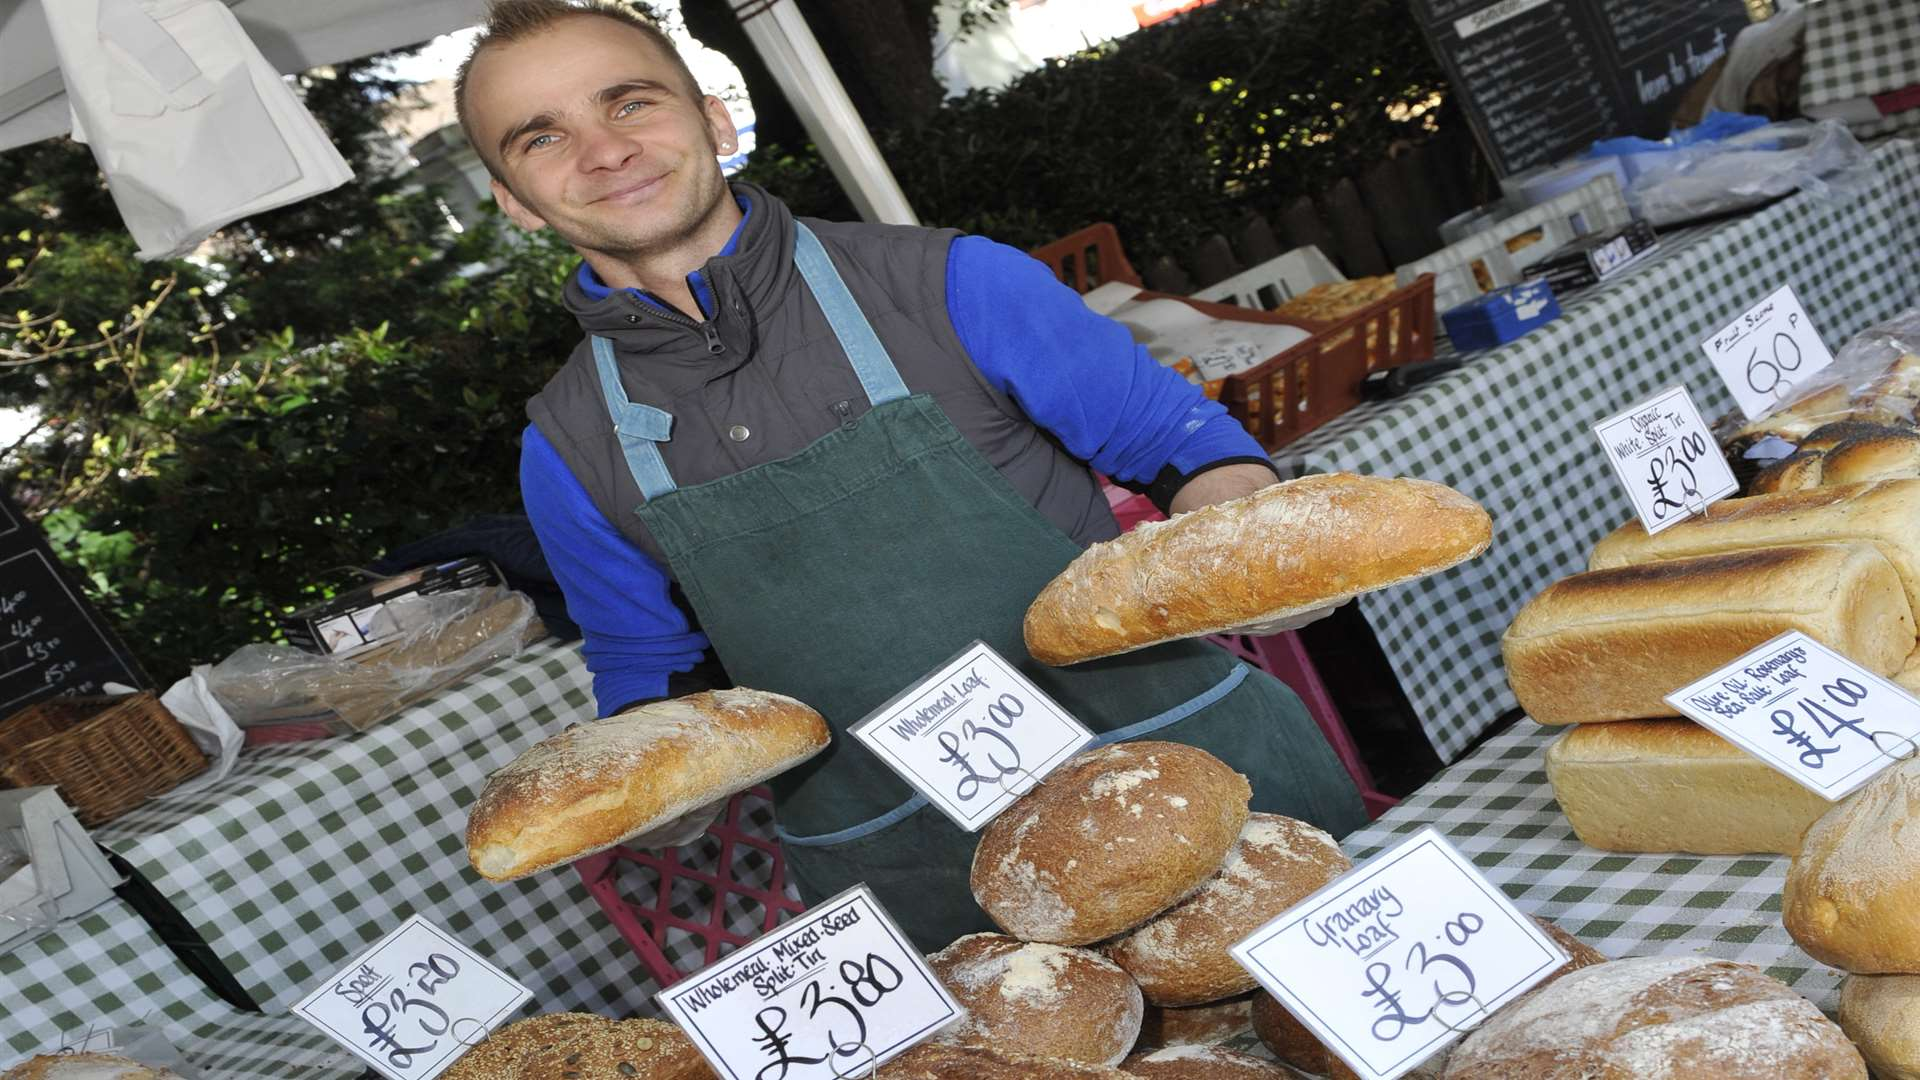 Freshly baked bread at the Broadstairs Food Festival